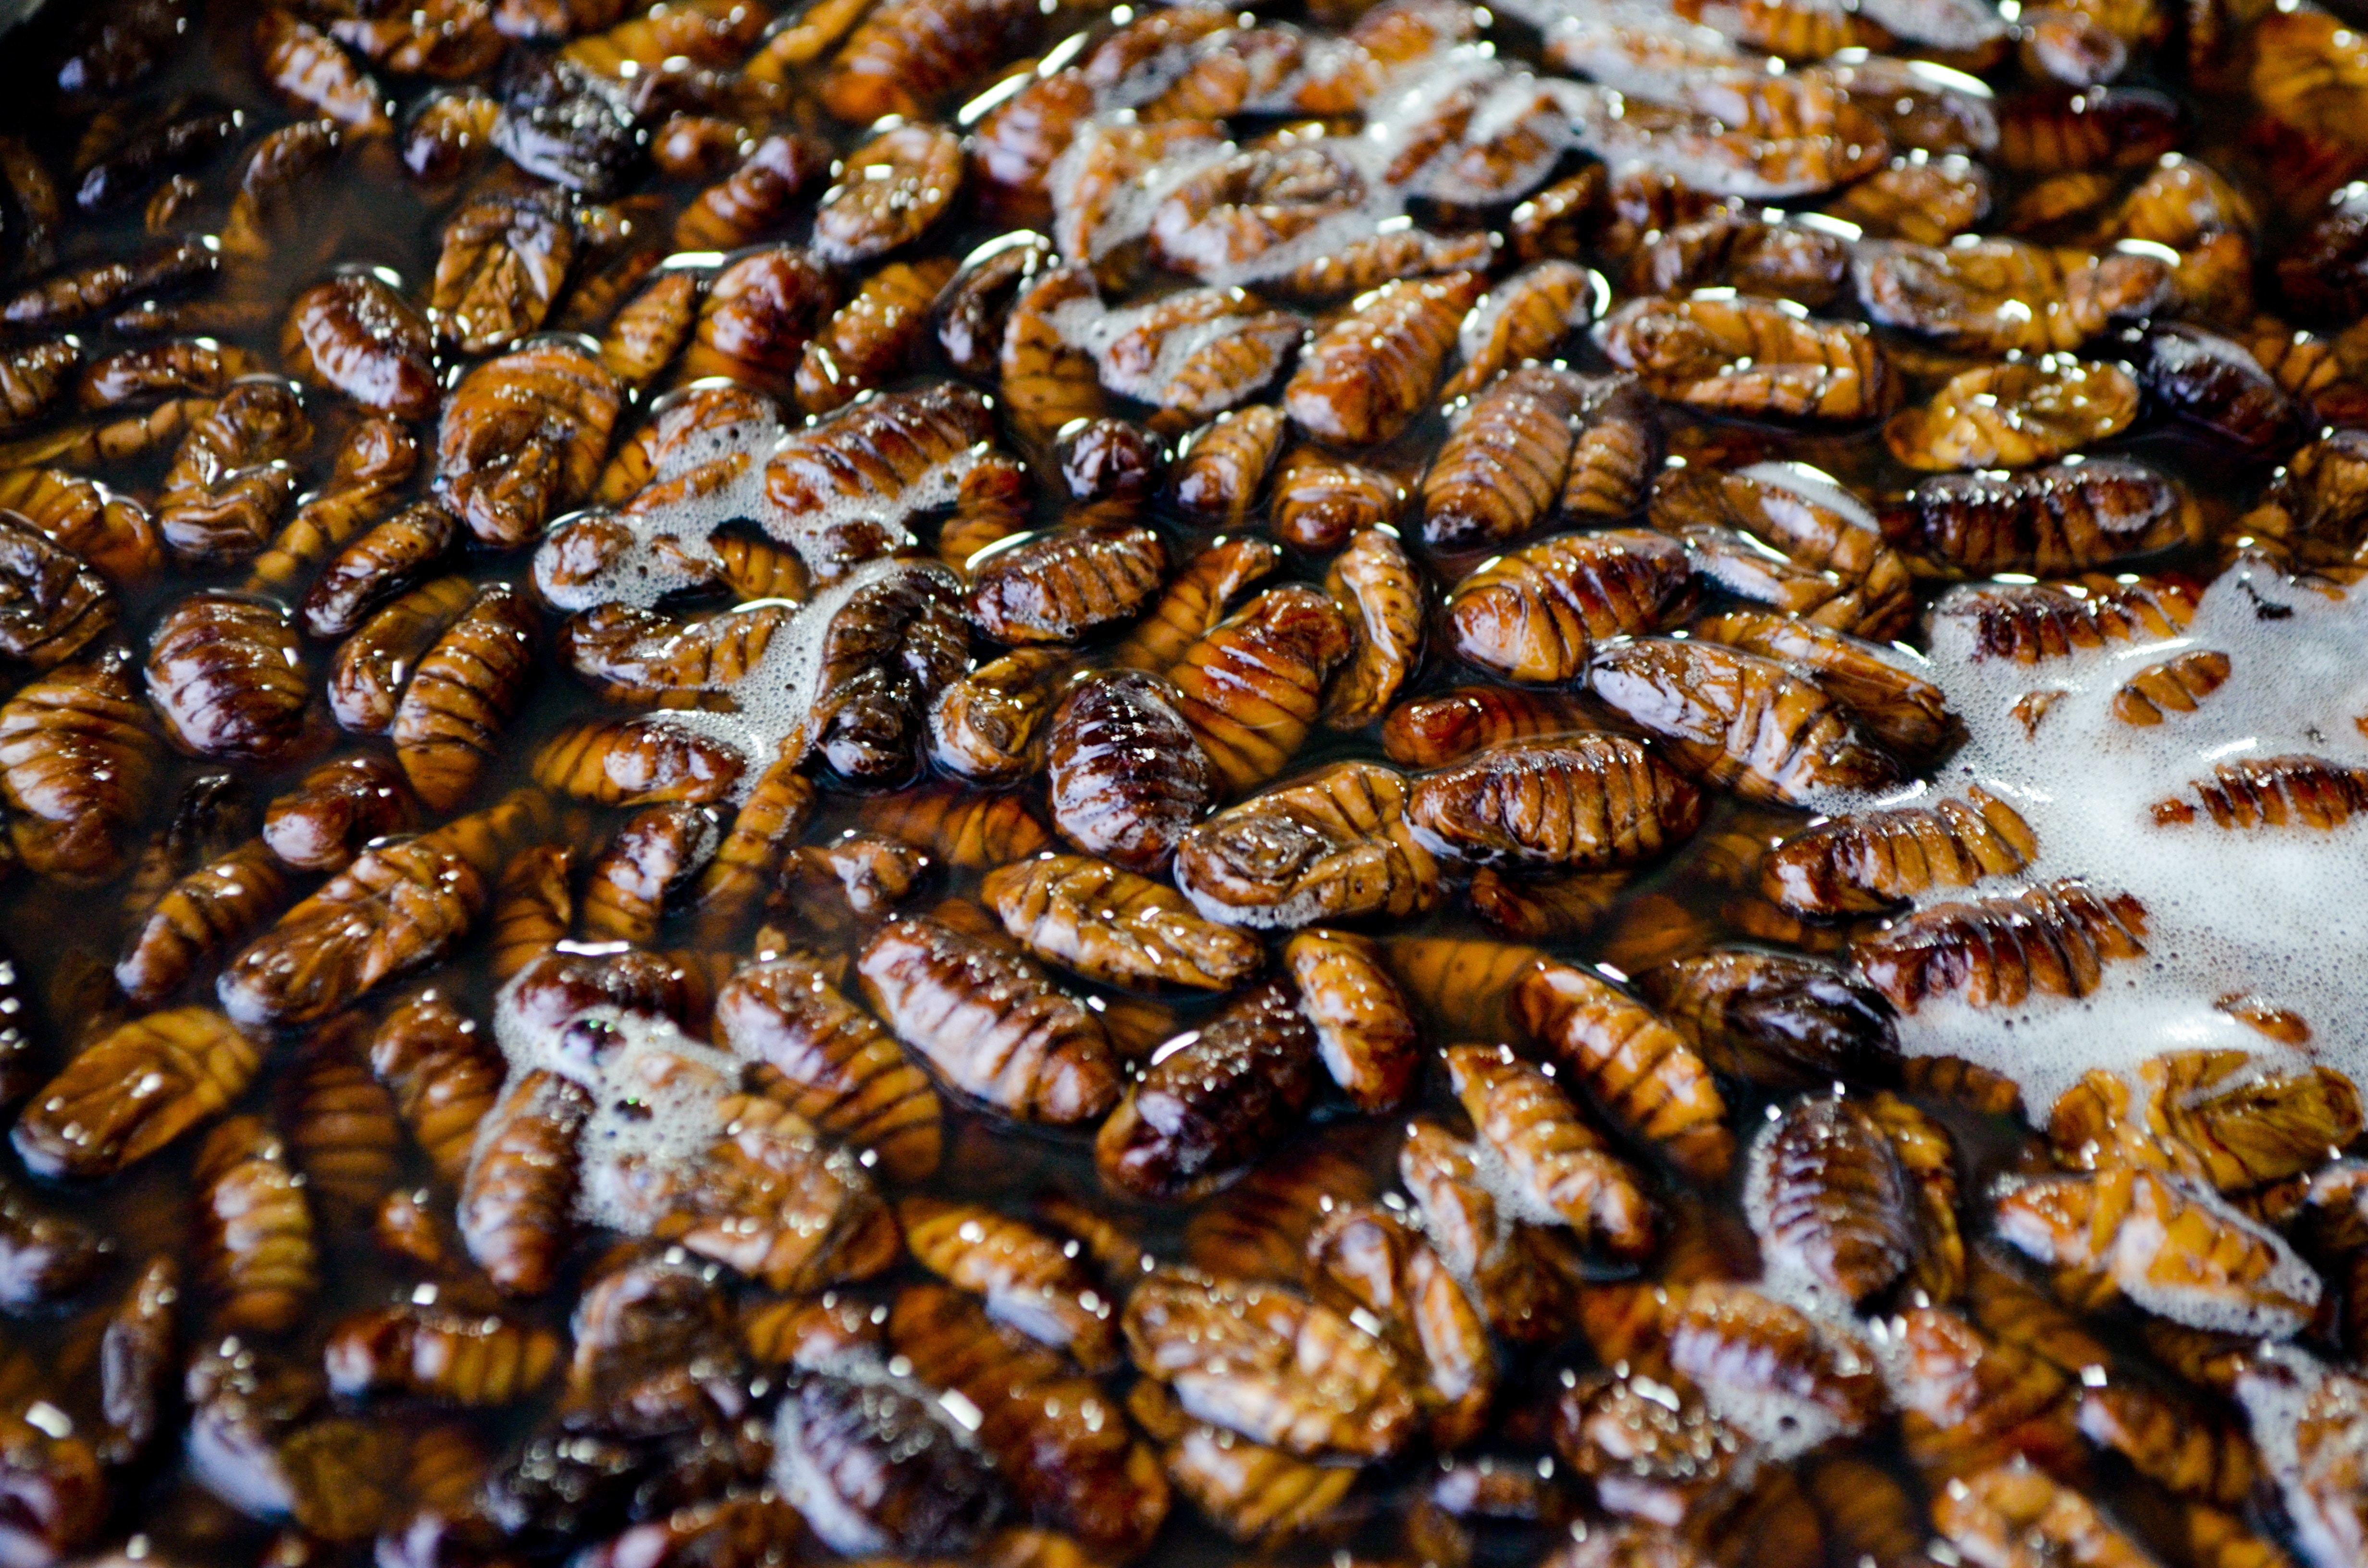 Are cockroaches ruining your business?